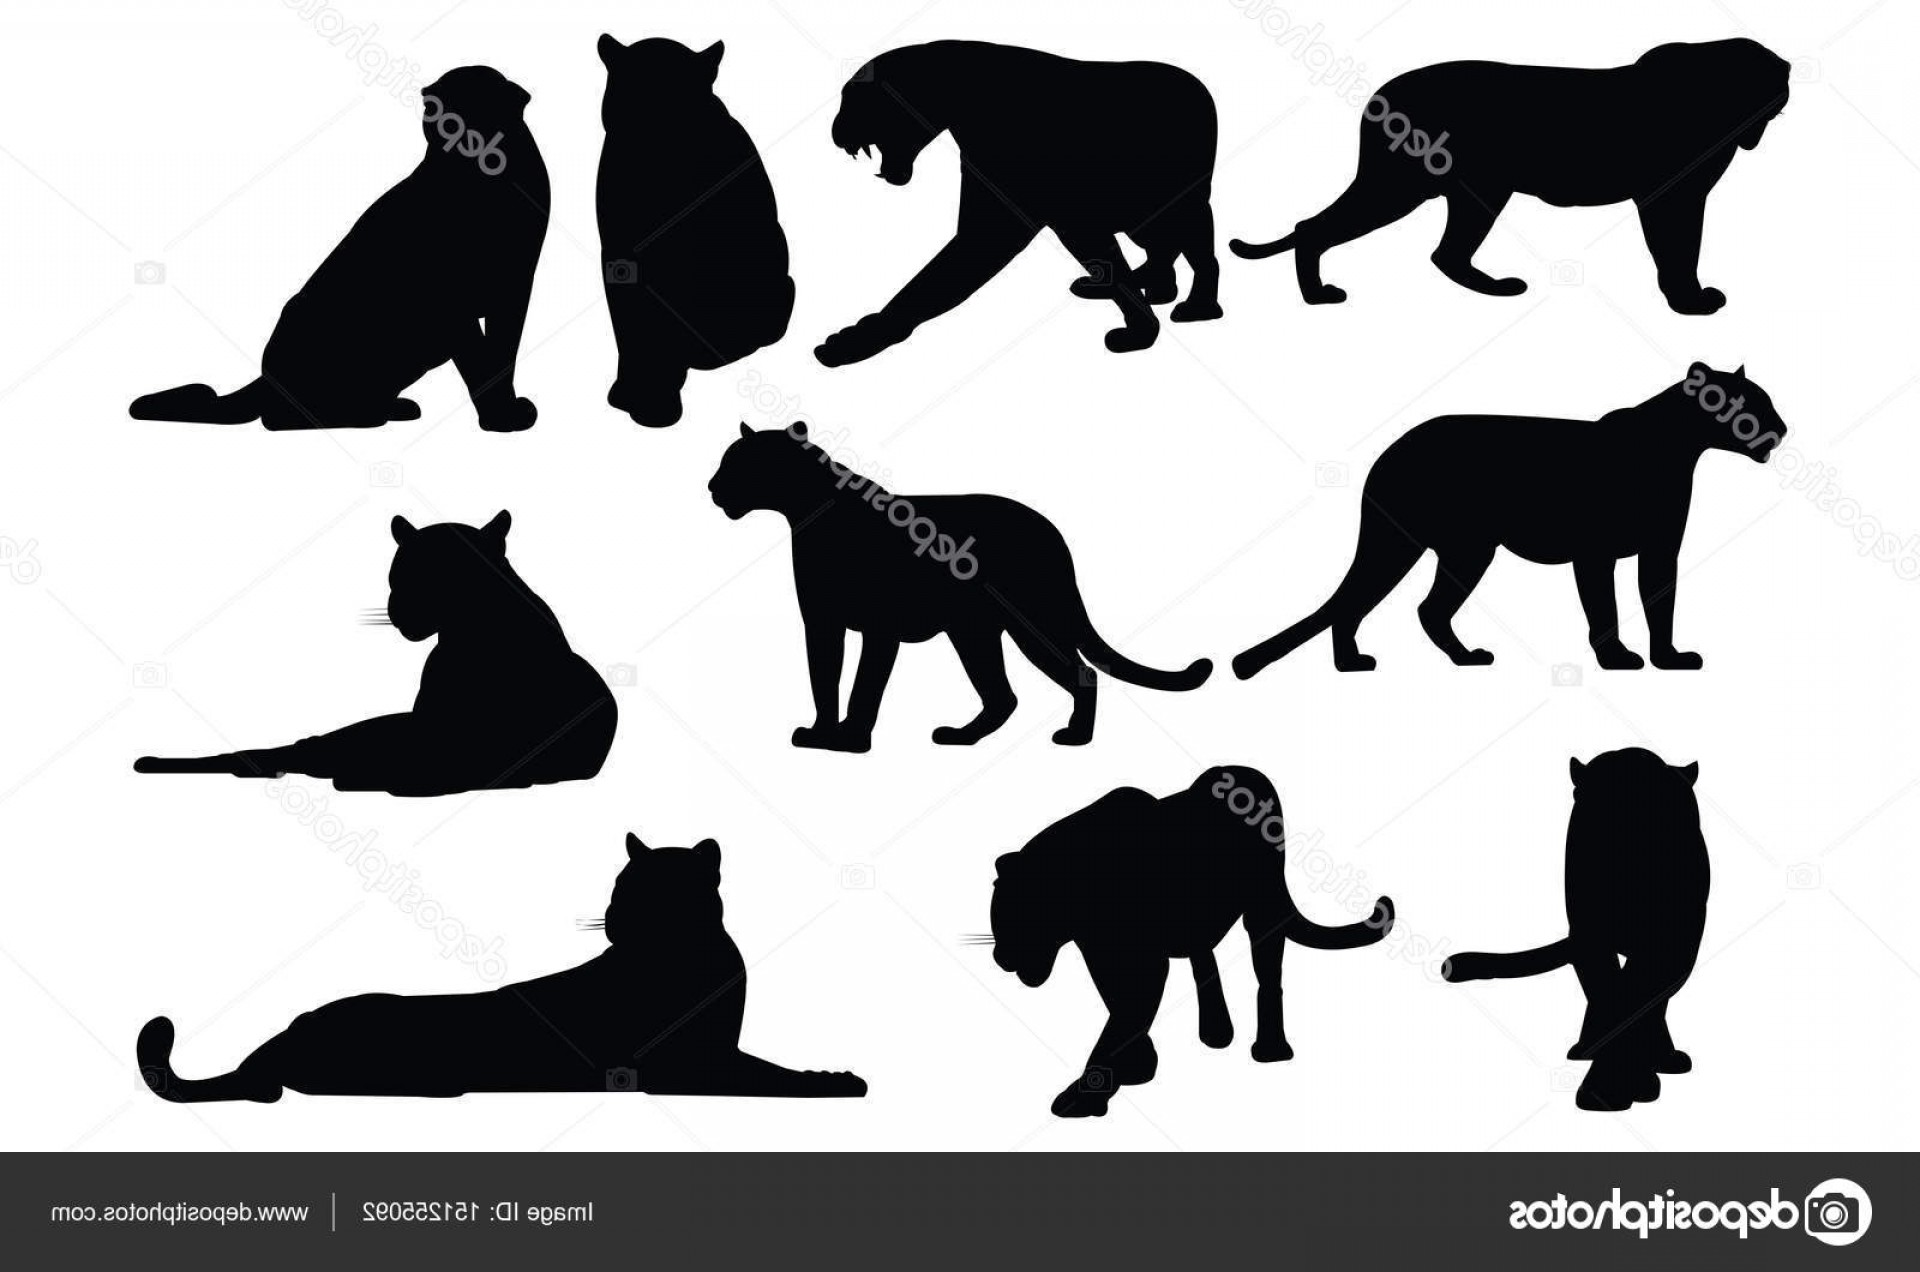 Panther Silhouette Vector: Stock Illustration Black Panther Silhouette Vector Illustration